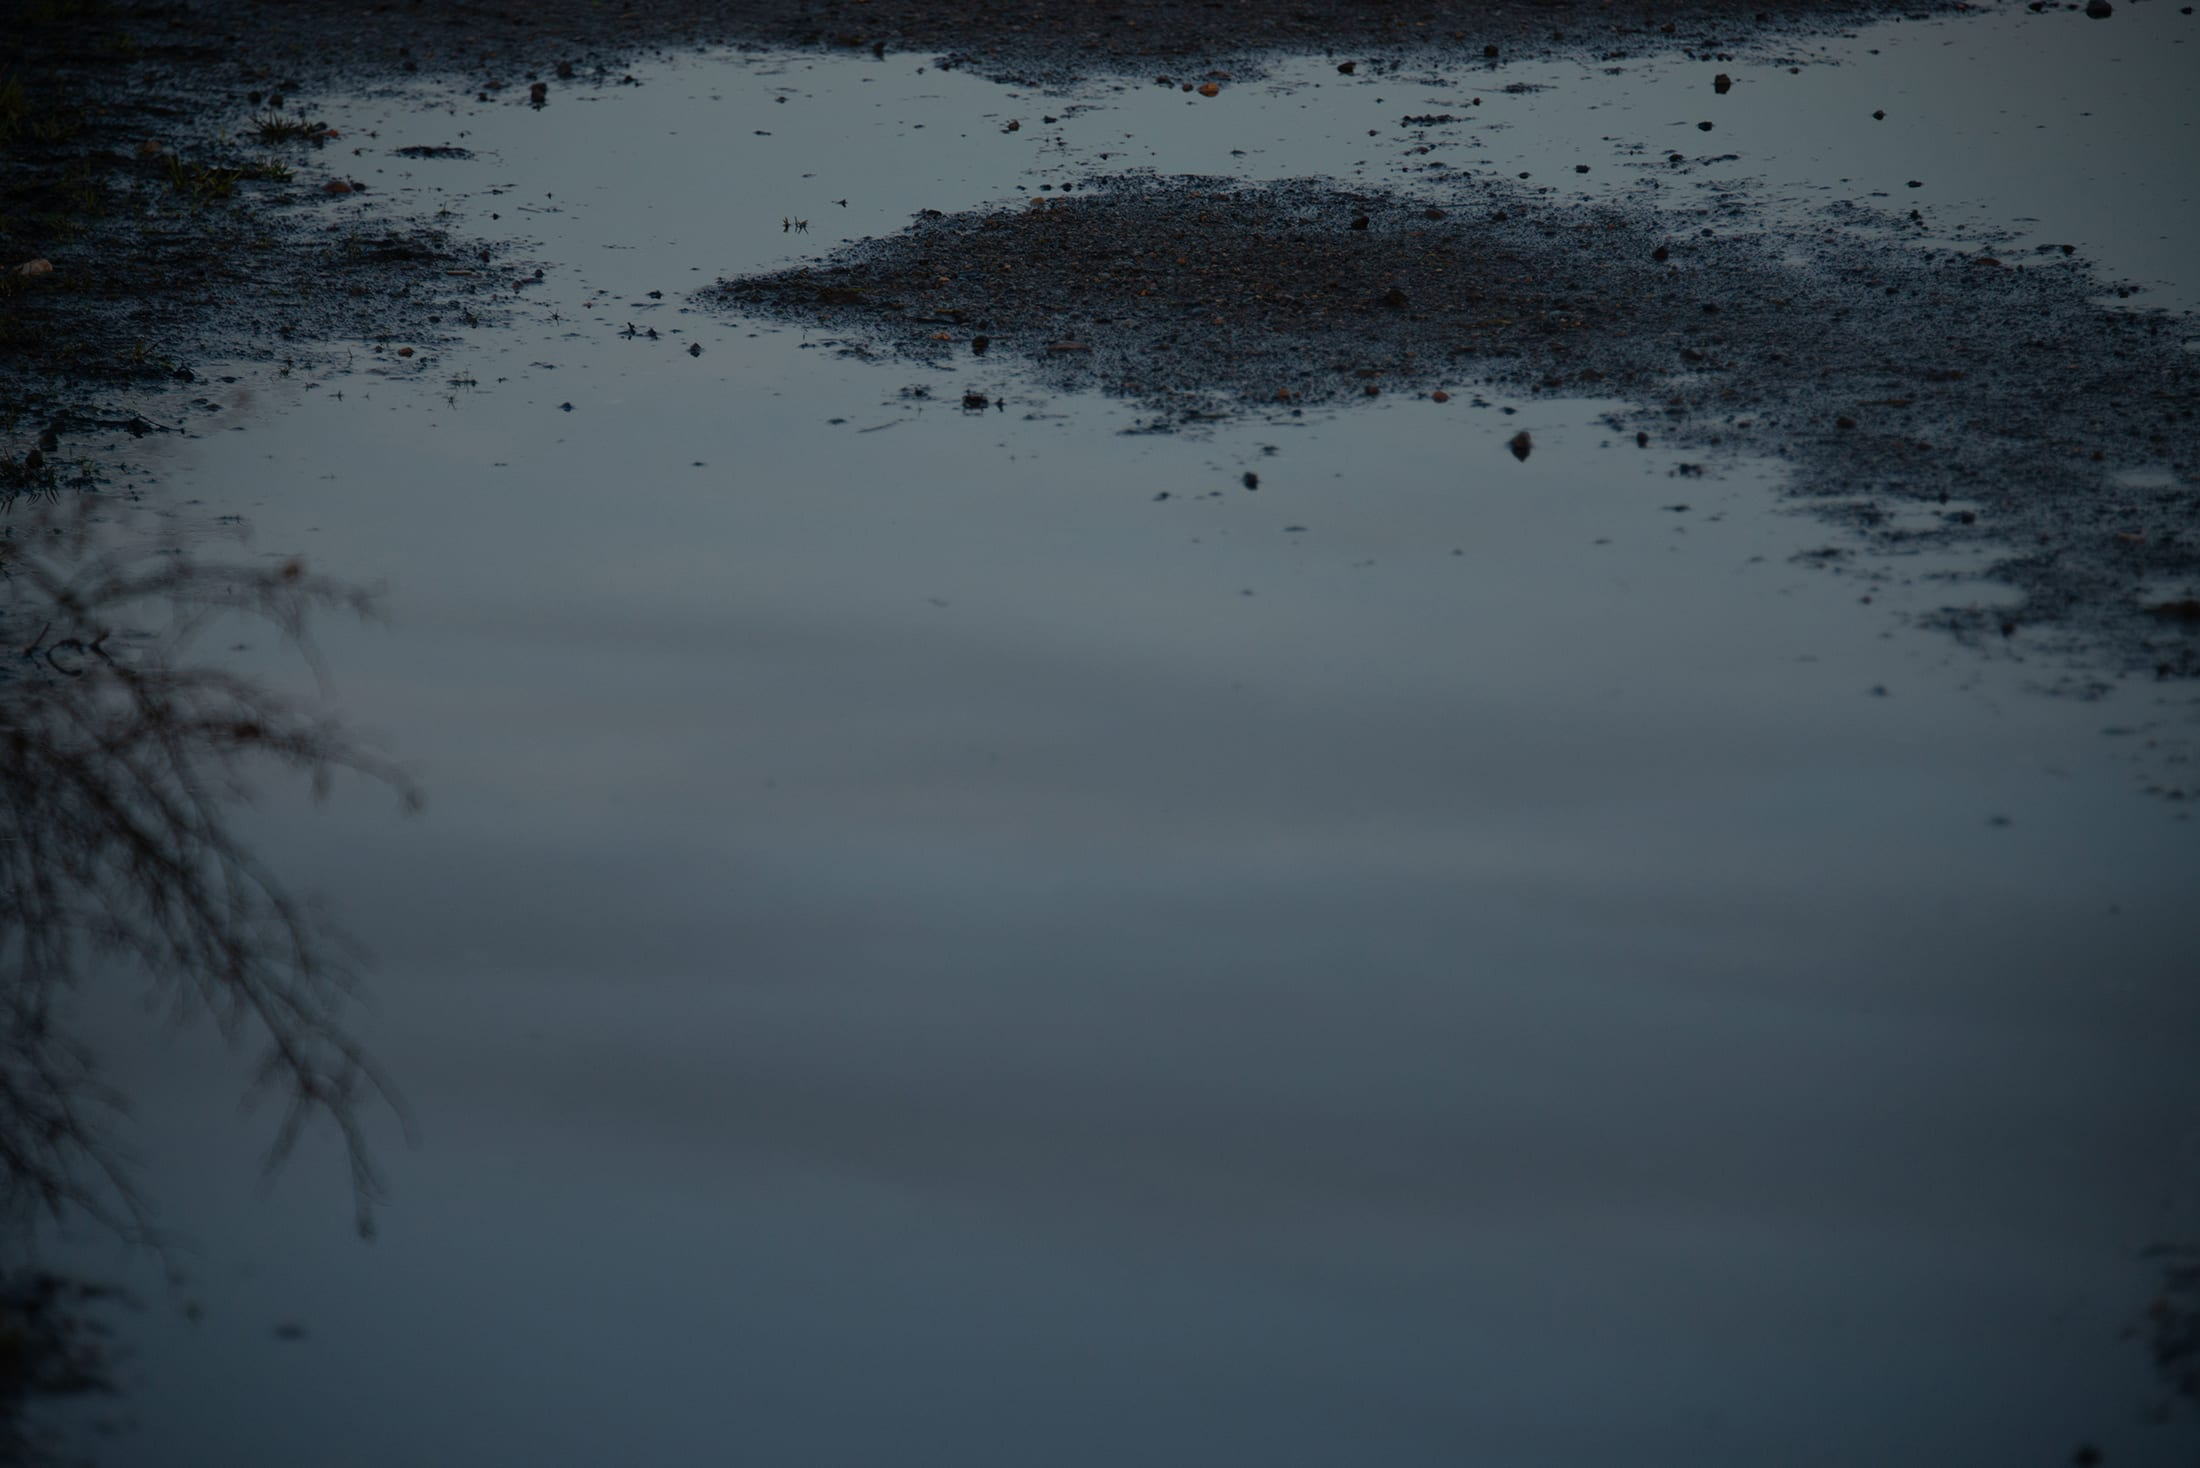 Close up of puddle and gravel